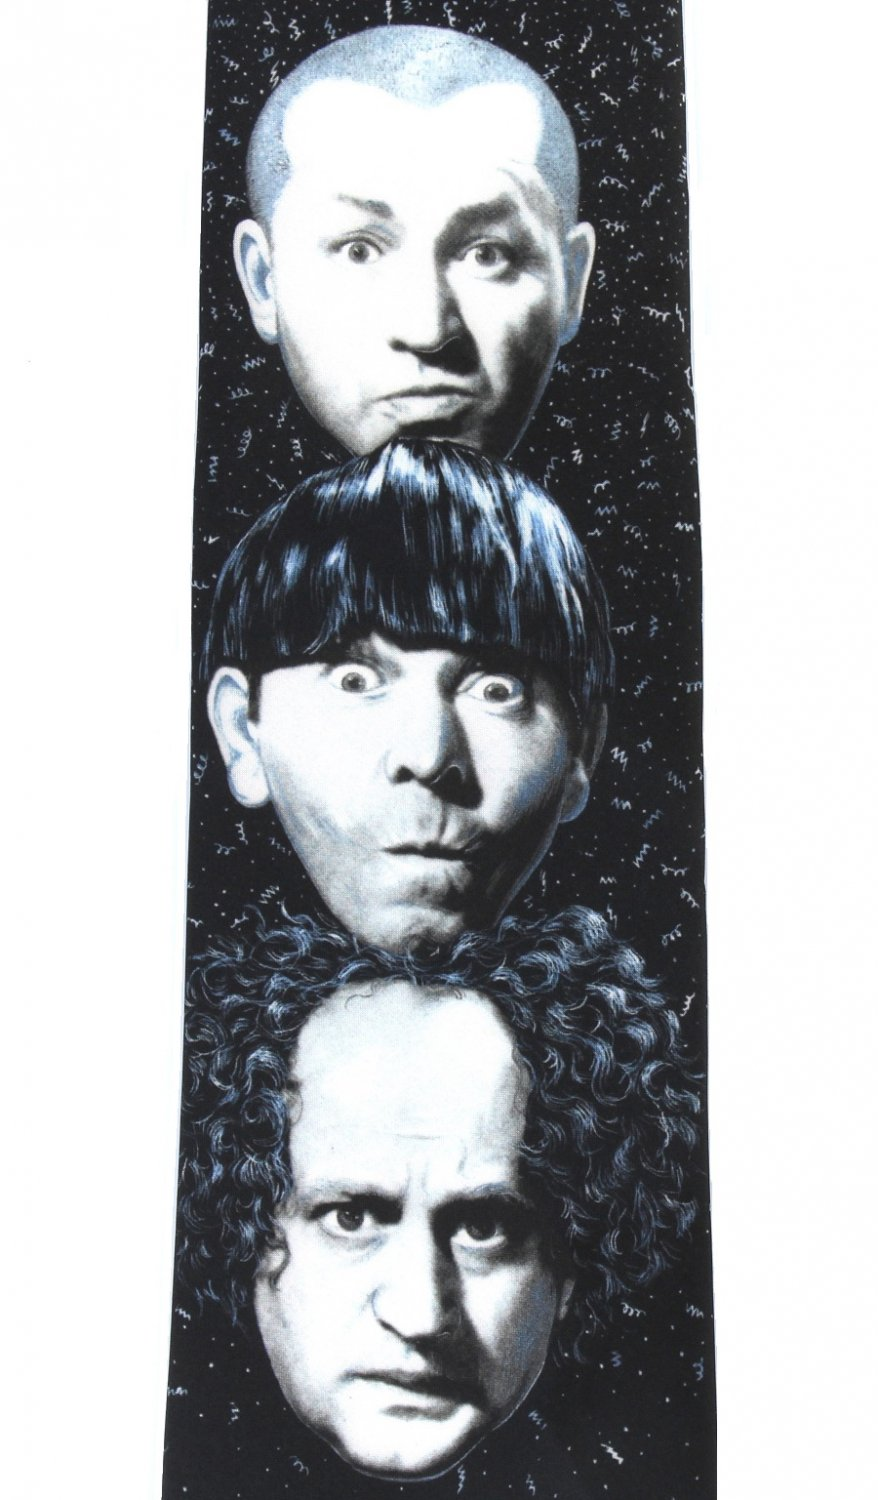 Three Stooges Necktie Mens Tie Larry Moe Curly Comedy Fun Party Ralph Marlin 1996